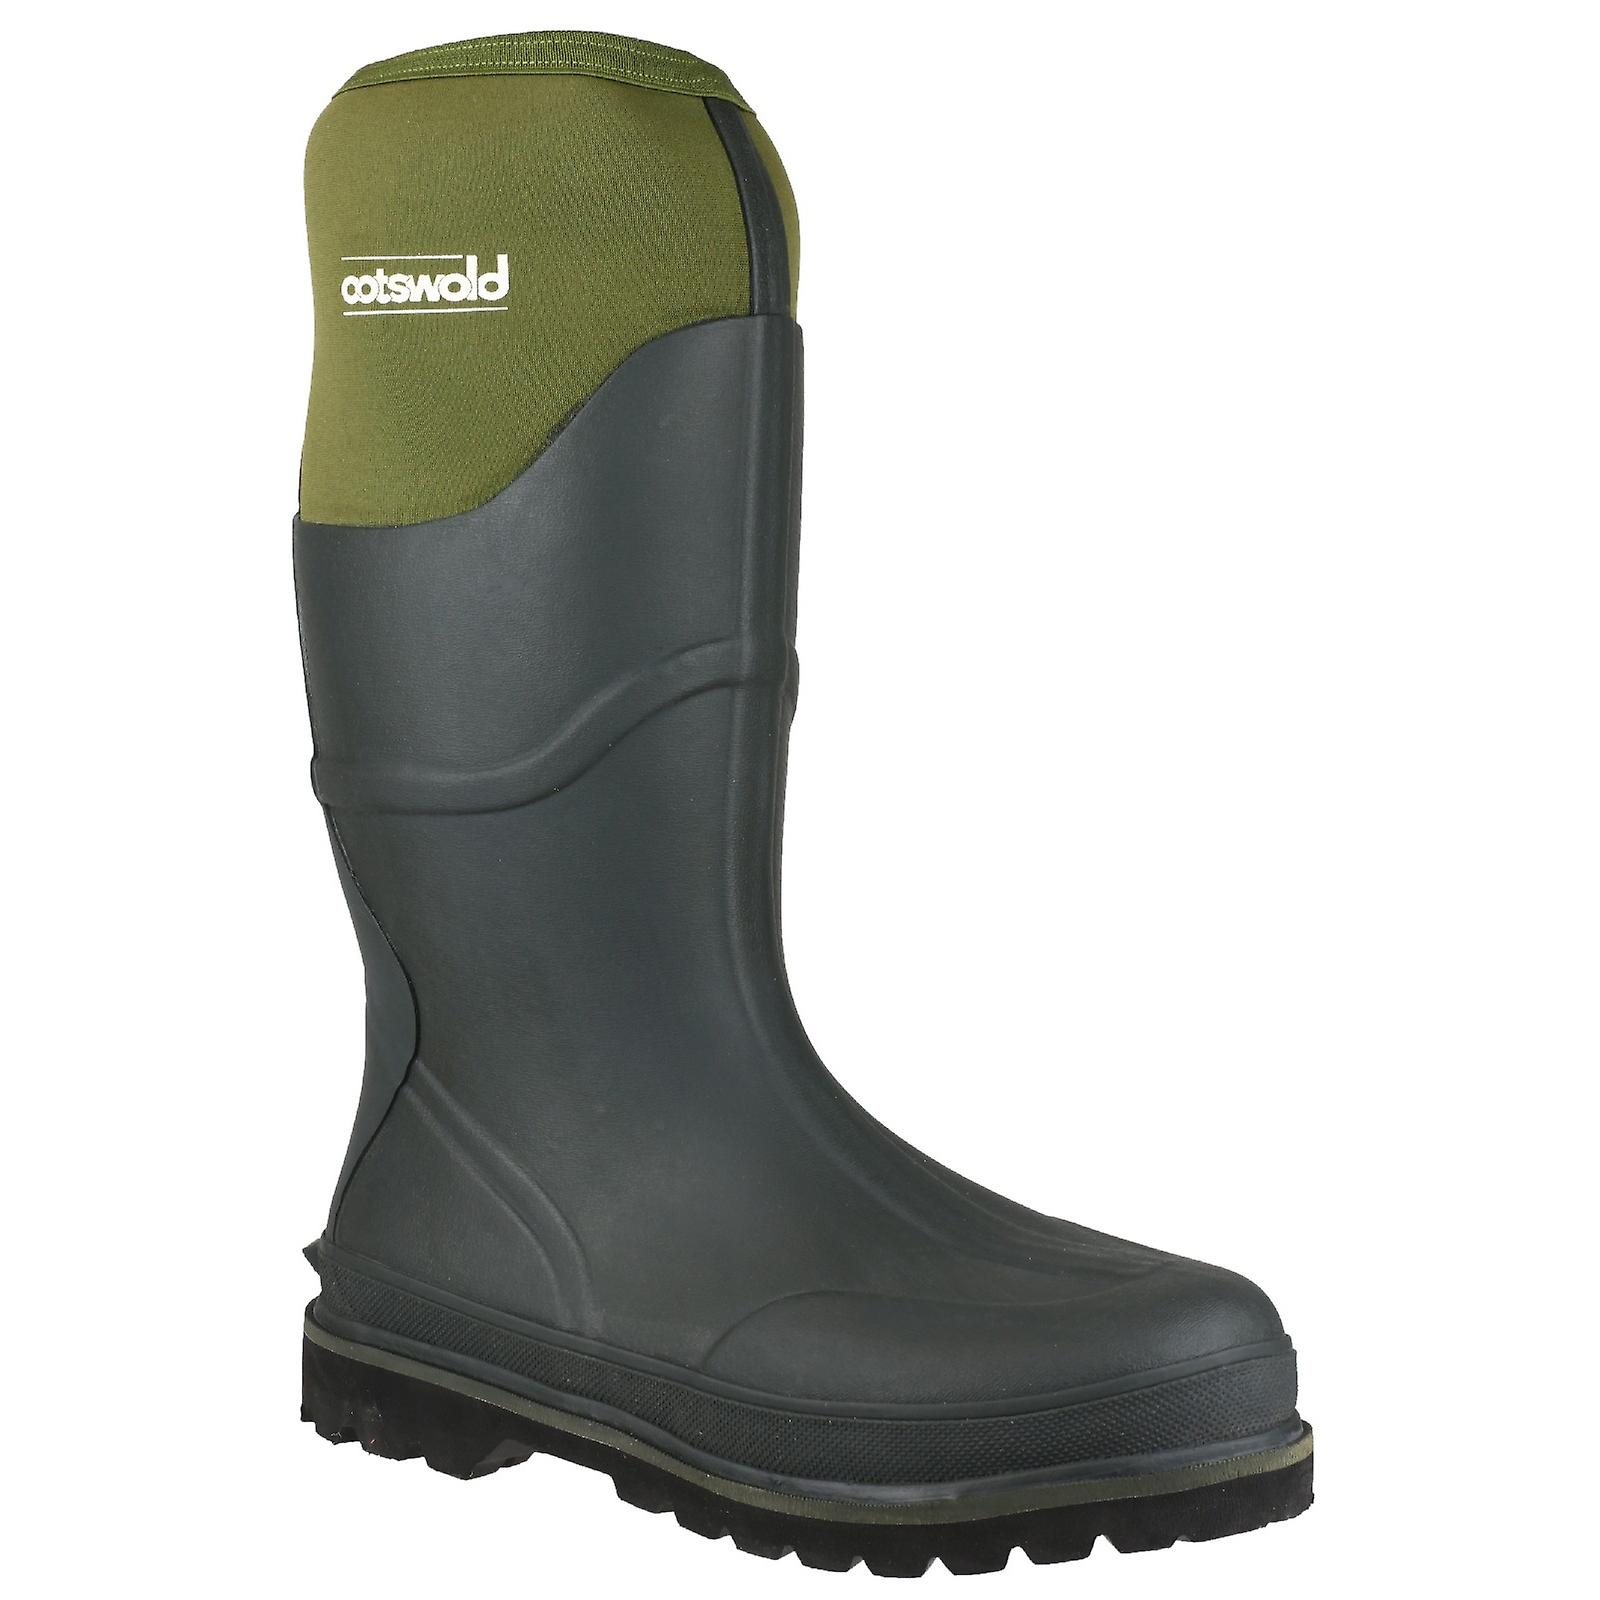 Cotswold Ranger Neoprene Mens Rubber Wellington Boots